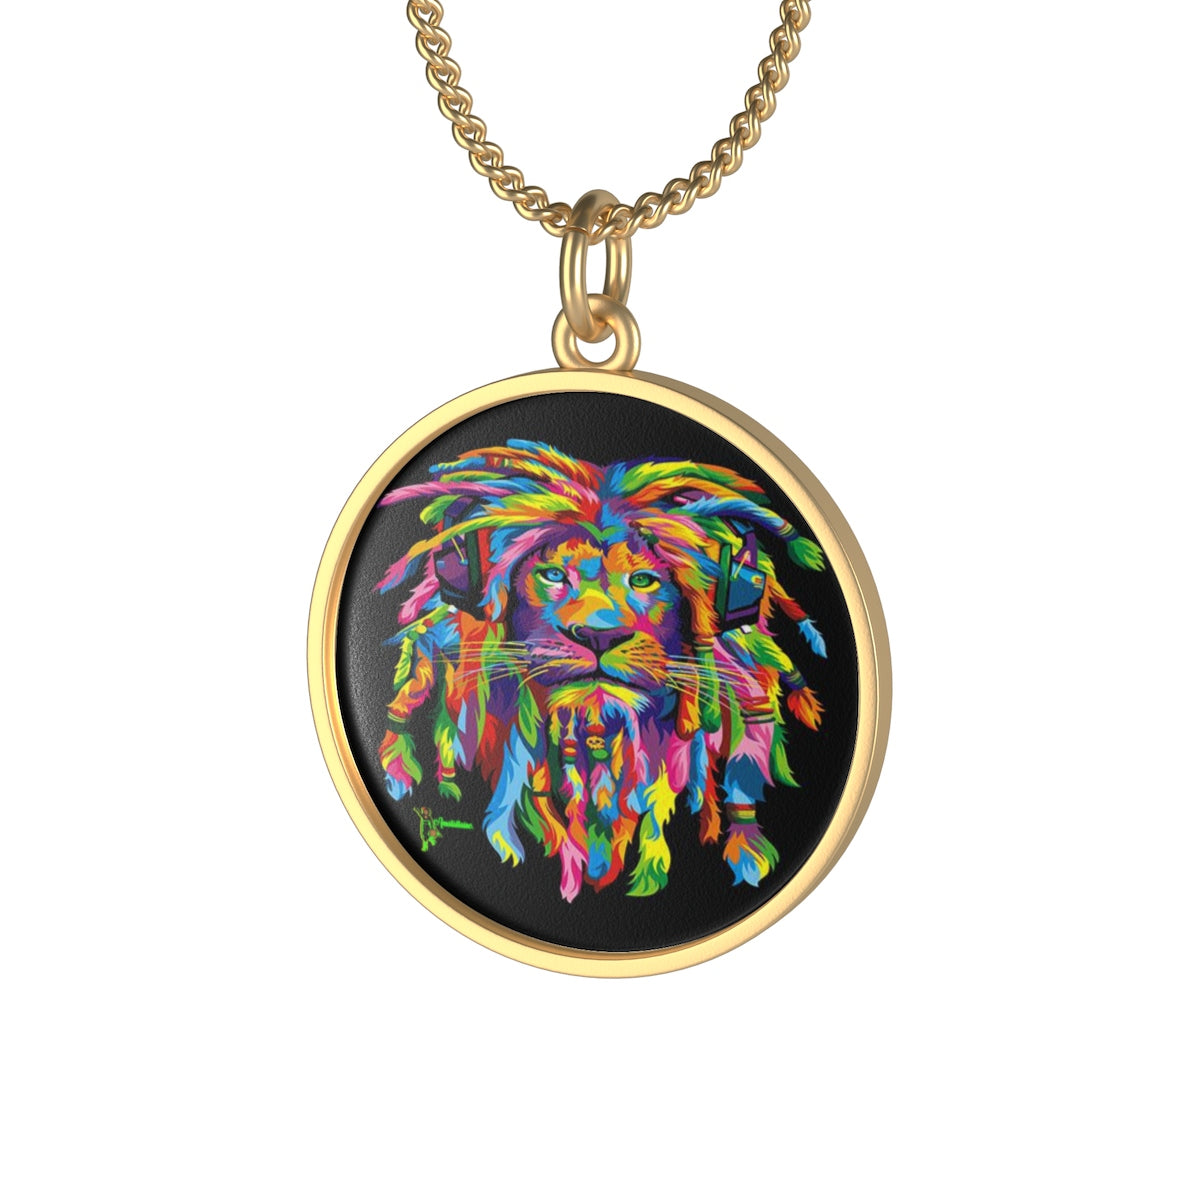 One Size Coin Pendant Diameter, in 0.78 Lotus Coin Pendant Diameter, in 0.66 Tile Pendant Length, in 0.86 Tile Pendant Width, in 0.23 This single loop necklace emphasizes individuality with a classic aesthetic. Made in USA.